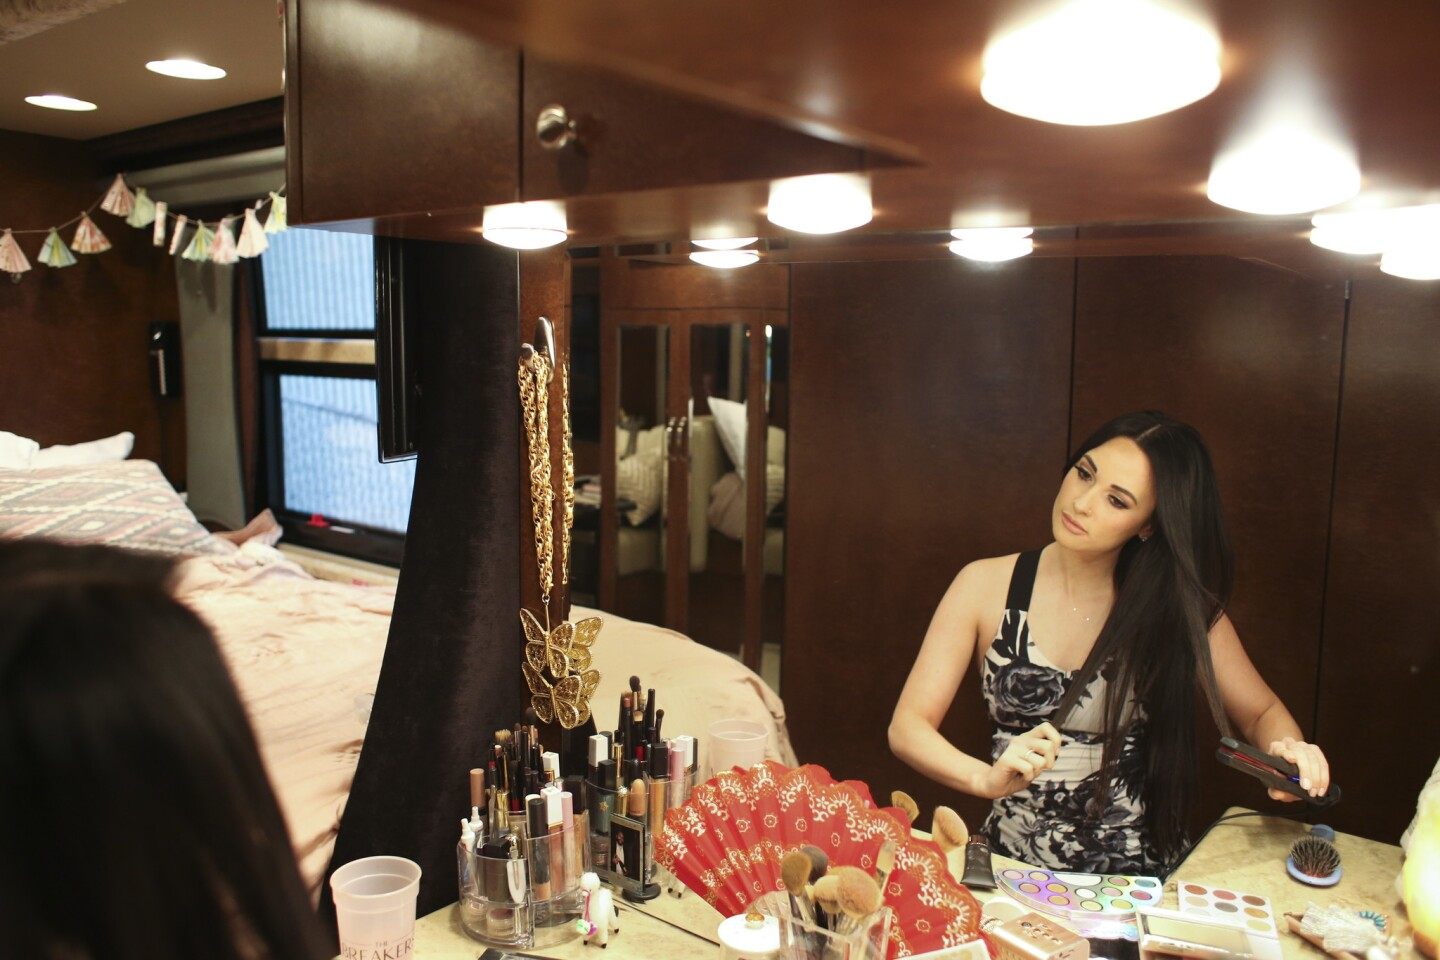 Kacey Musgraves prepares for her show at the U.S. Cellular Center in her tour bus.